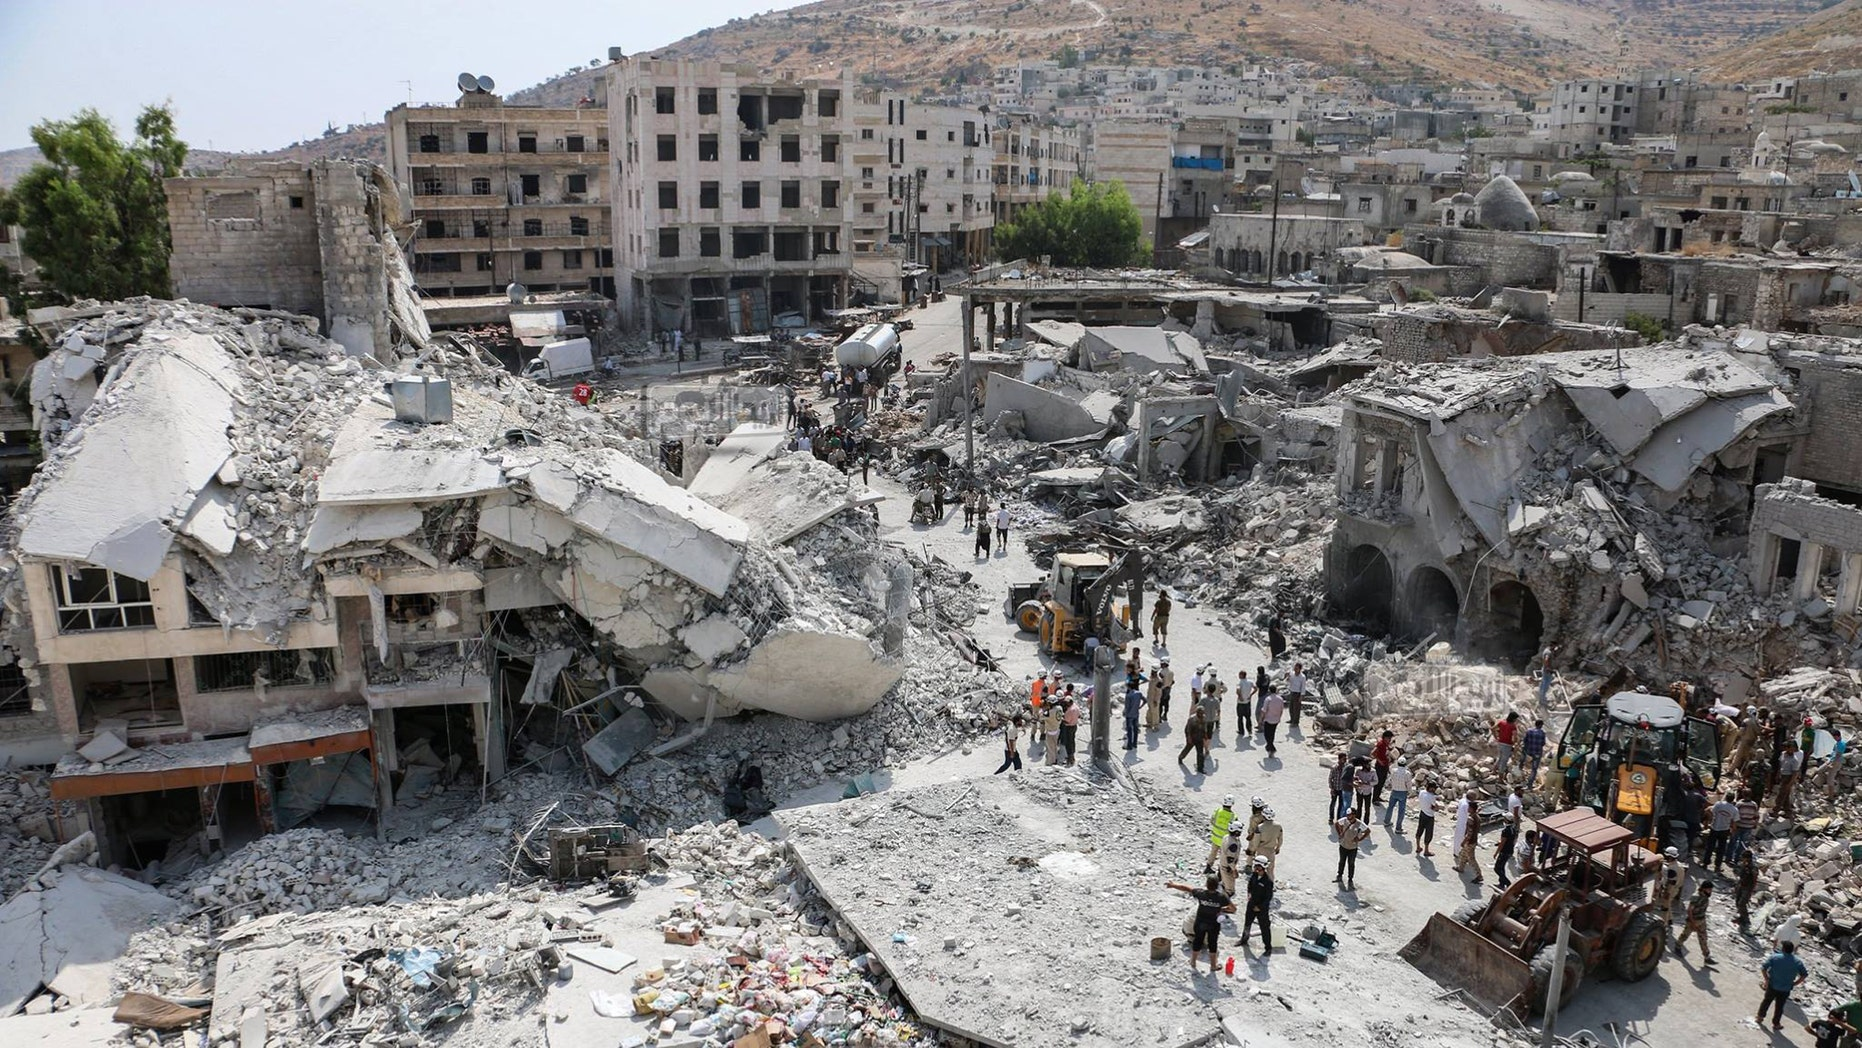 Aug. 3, 2015 - The scene after a government  warplane crashed in the center of the town of Ariha, in the northwestern province of Idlib, Syria. Air raids and the subsequent crash of a Syrian warplane in a residential area in the northwestern town of Ariha on Monday killed and wounded dozens of people, two activist groups said.